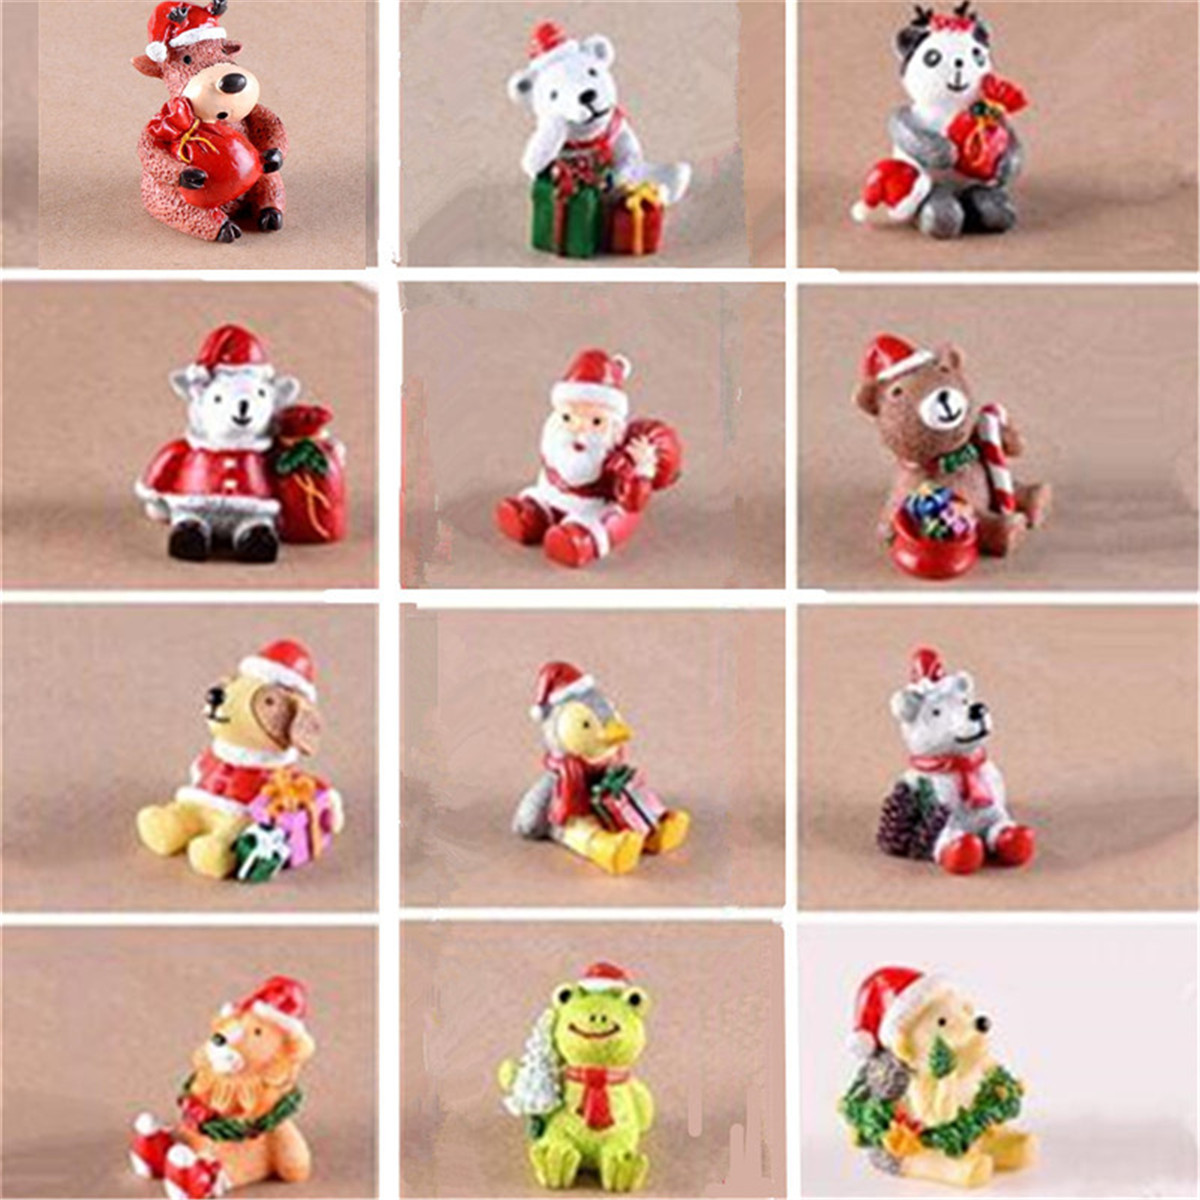 mini christmas resin animals fairy garden house landscape craft decor xmas gift